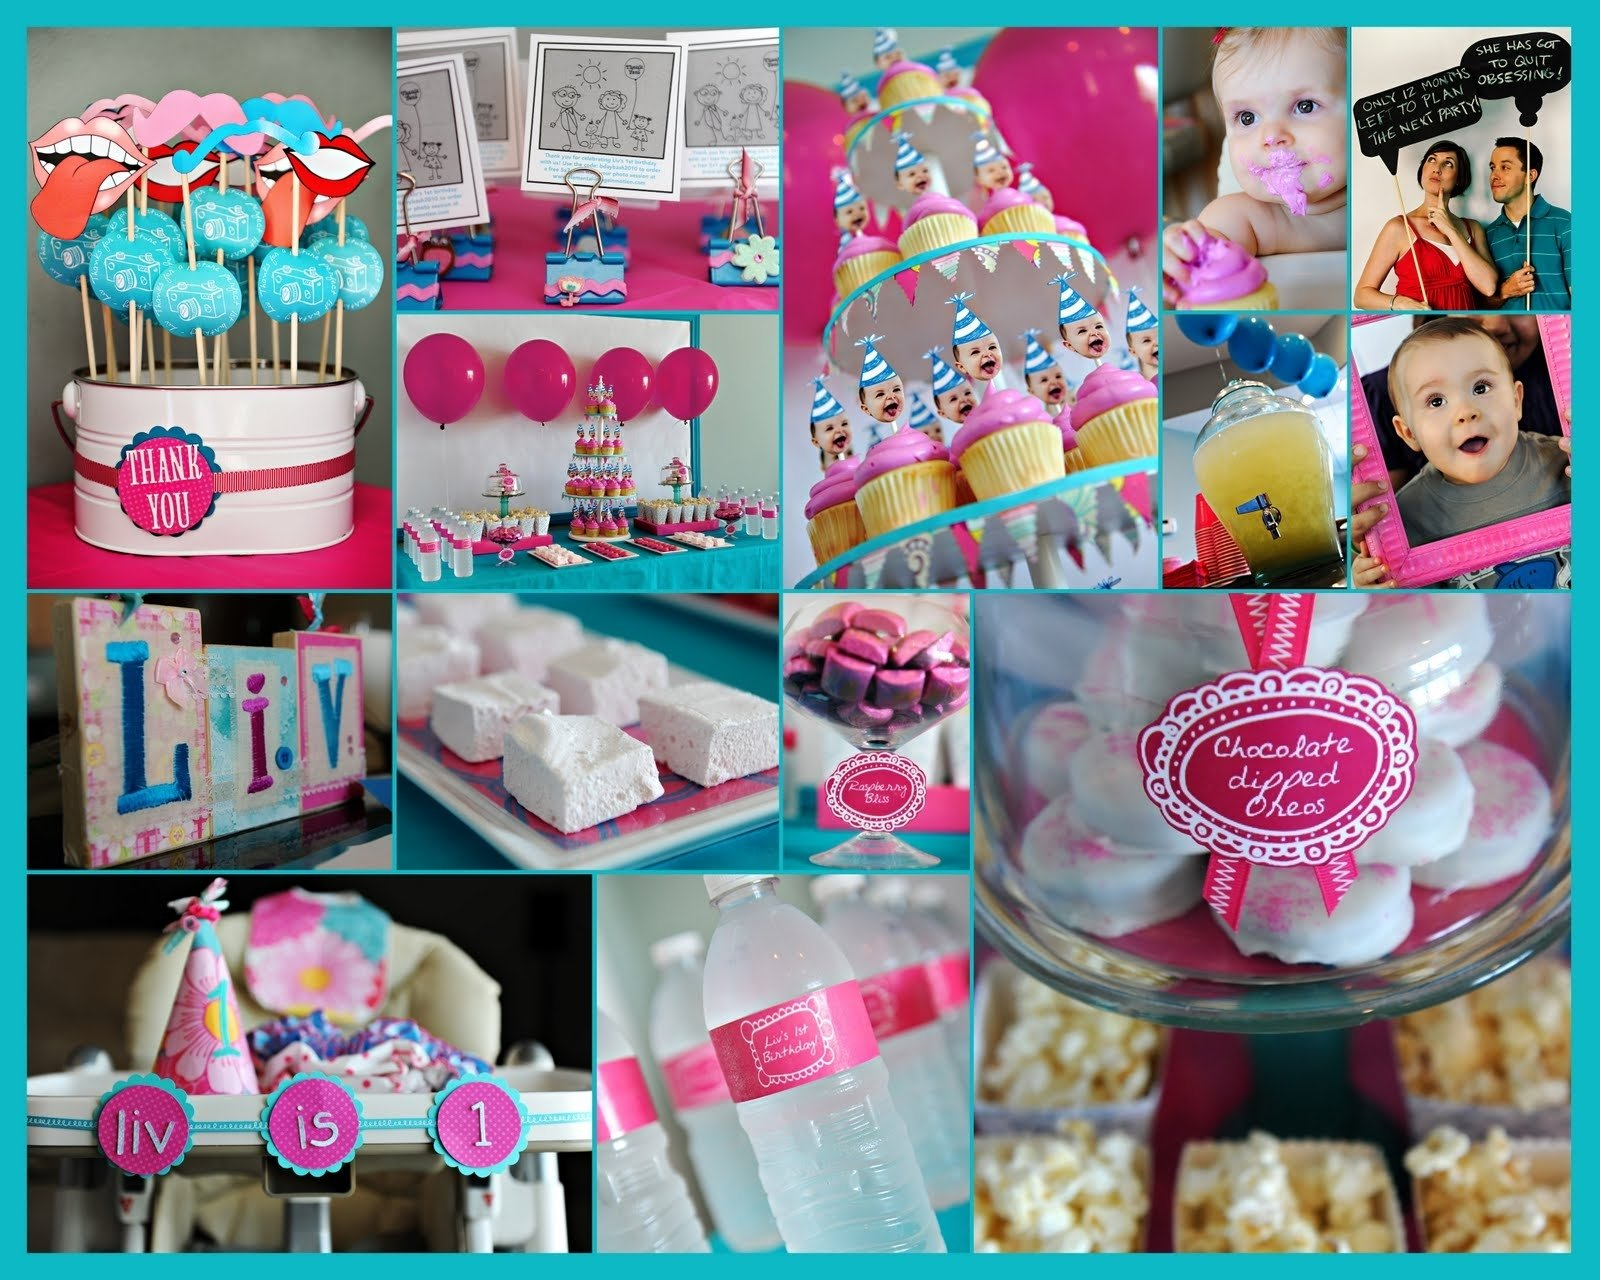 10 Awesome 13 Yr Old Birthday Party Ideas elle belle creative one year old in a flash a first birthday party 20 2020